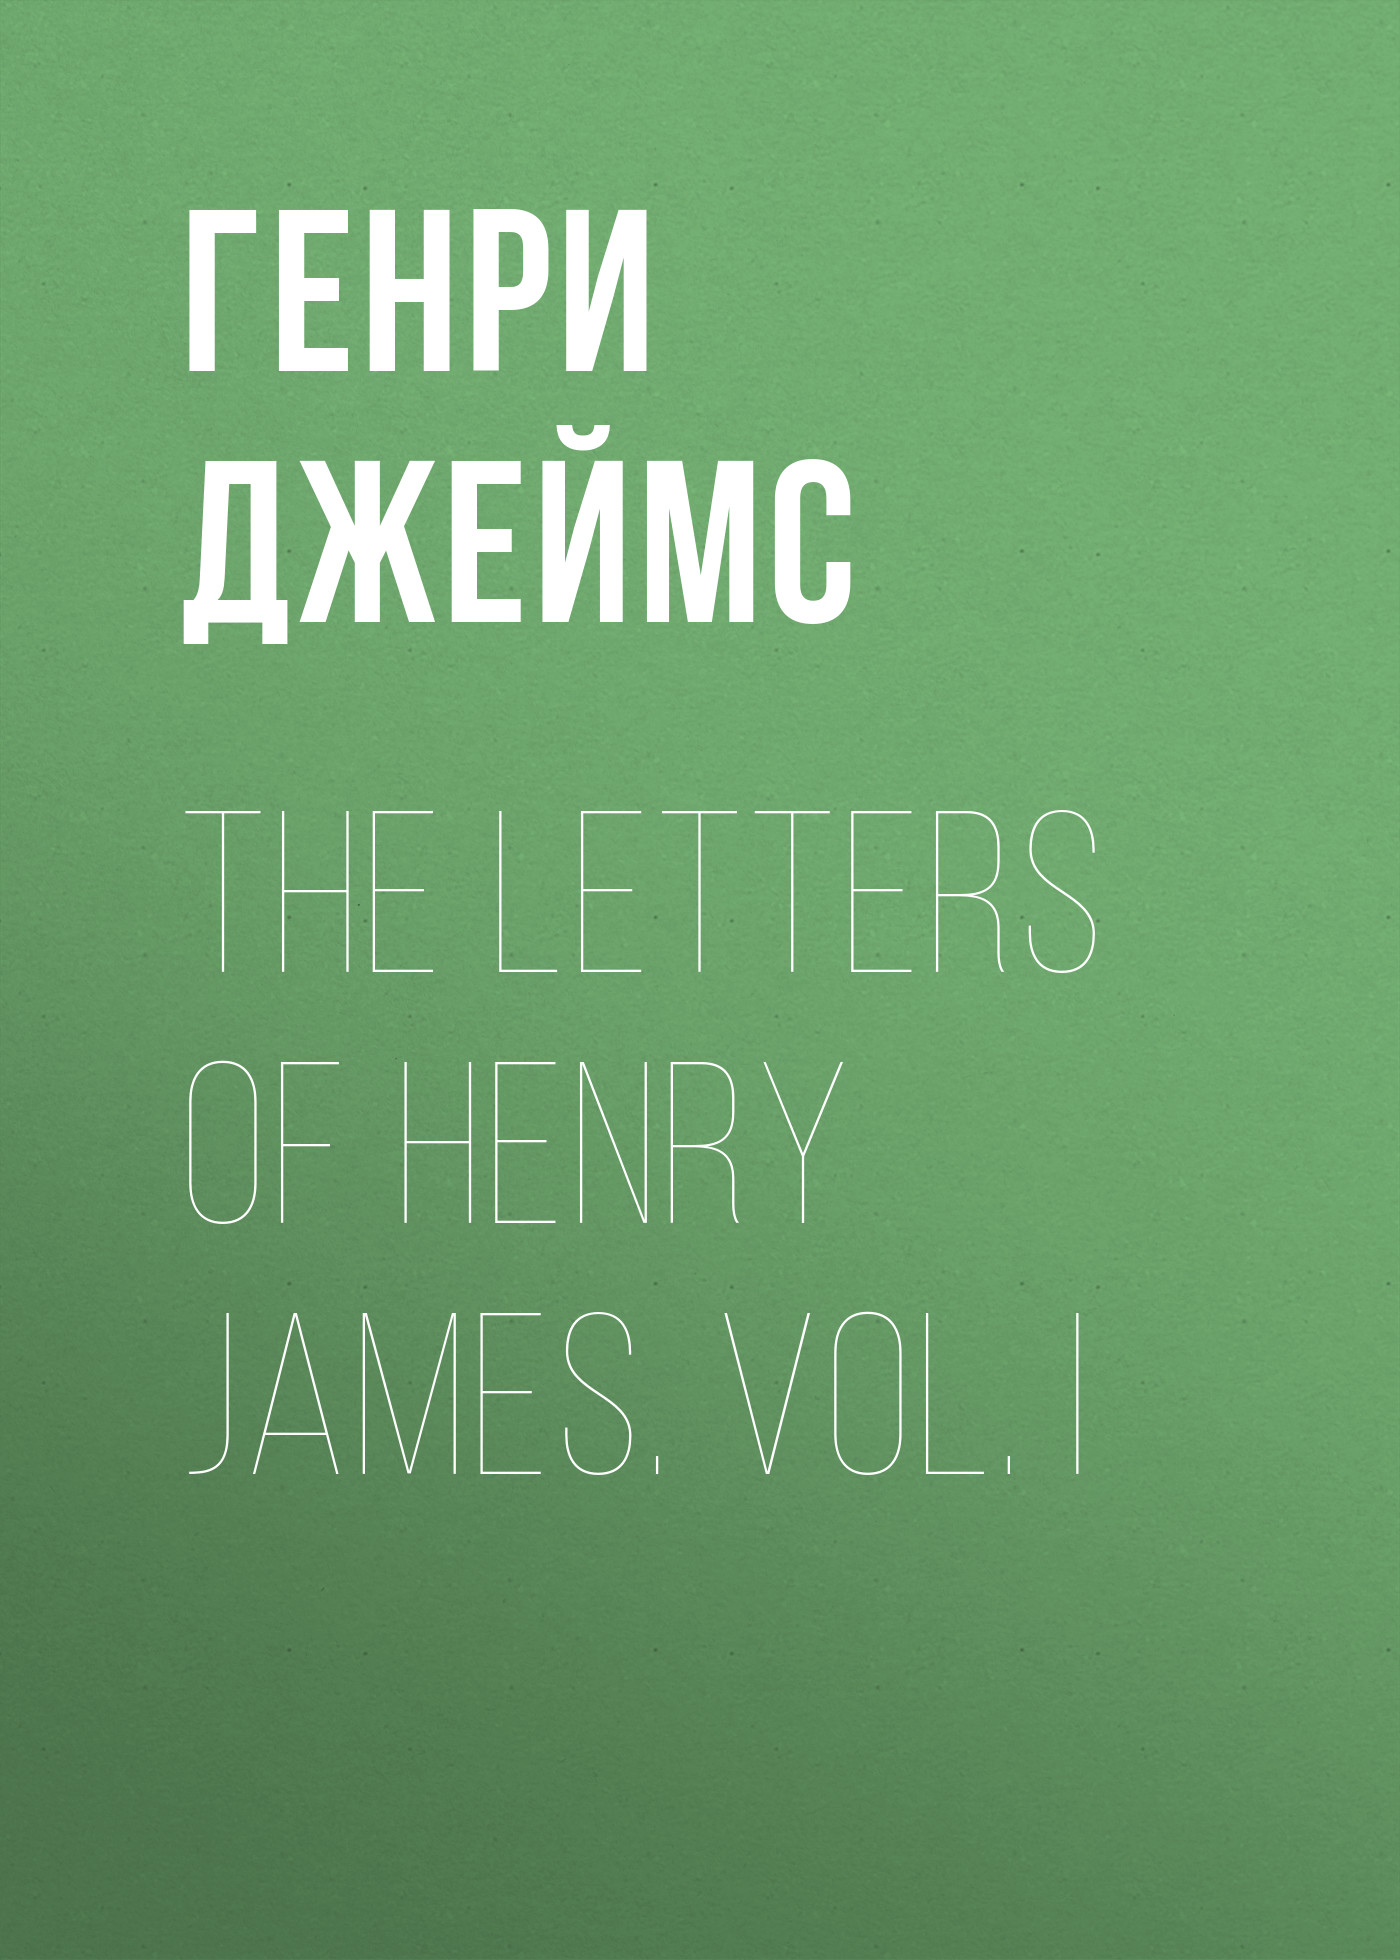 Генри Джеймс The Letters of Henry James. Vol. I этта джеймс etta james hickory dickory dock